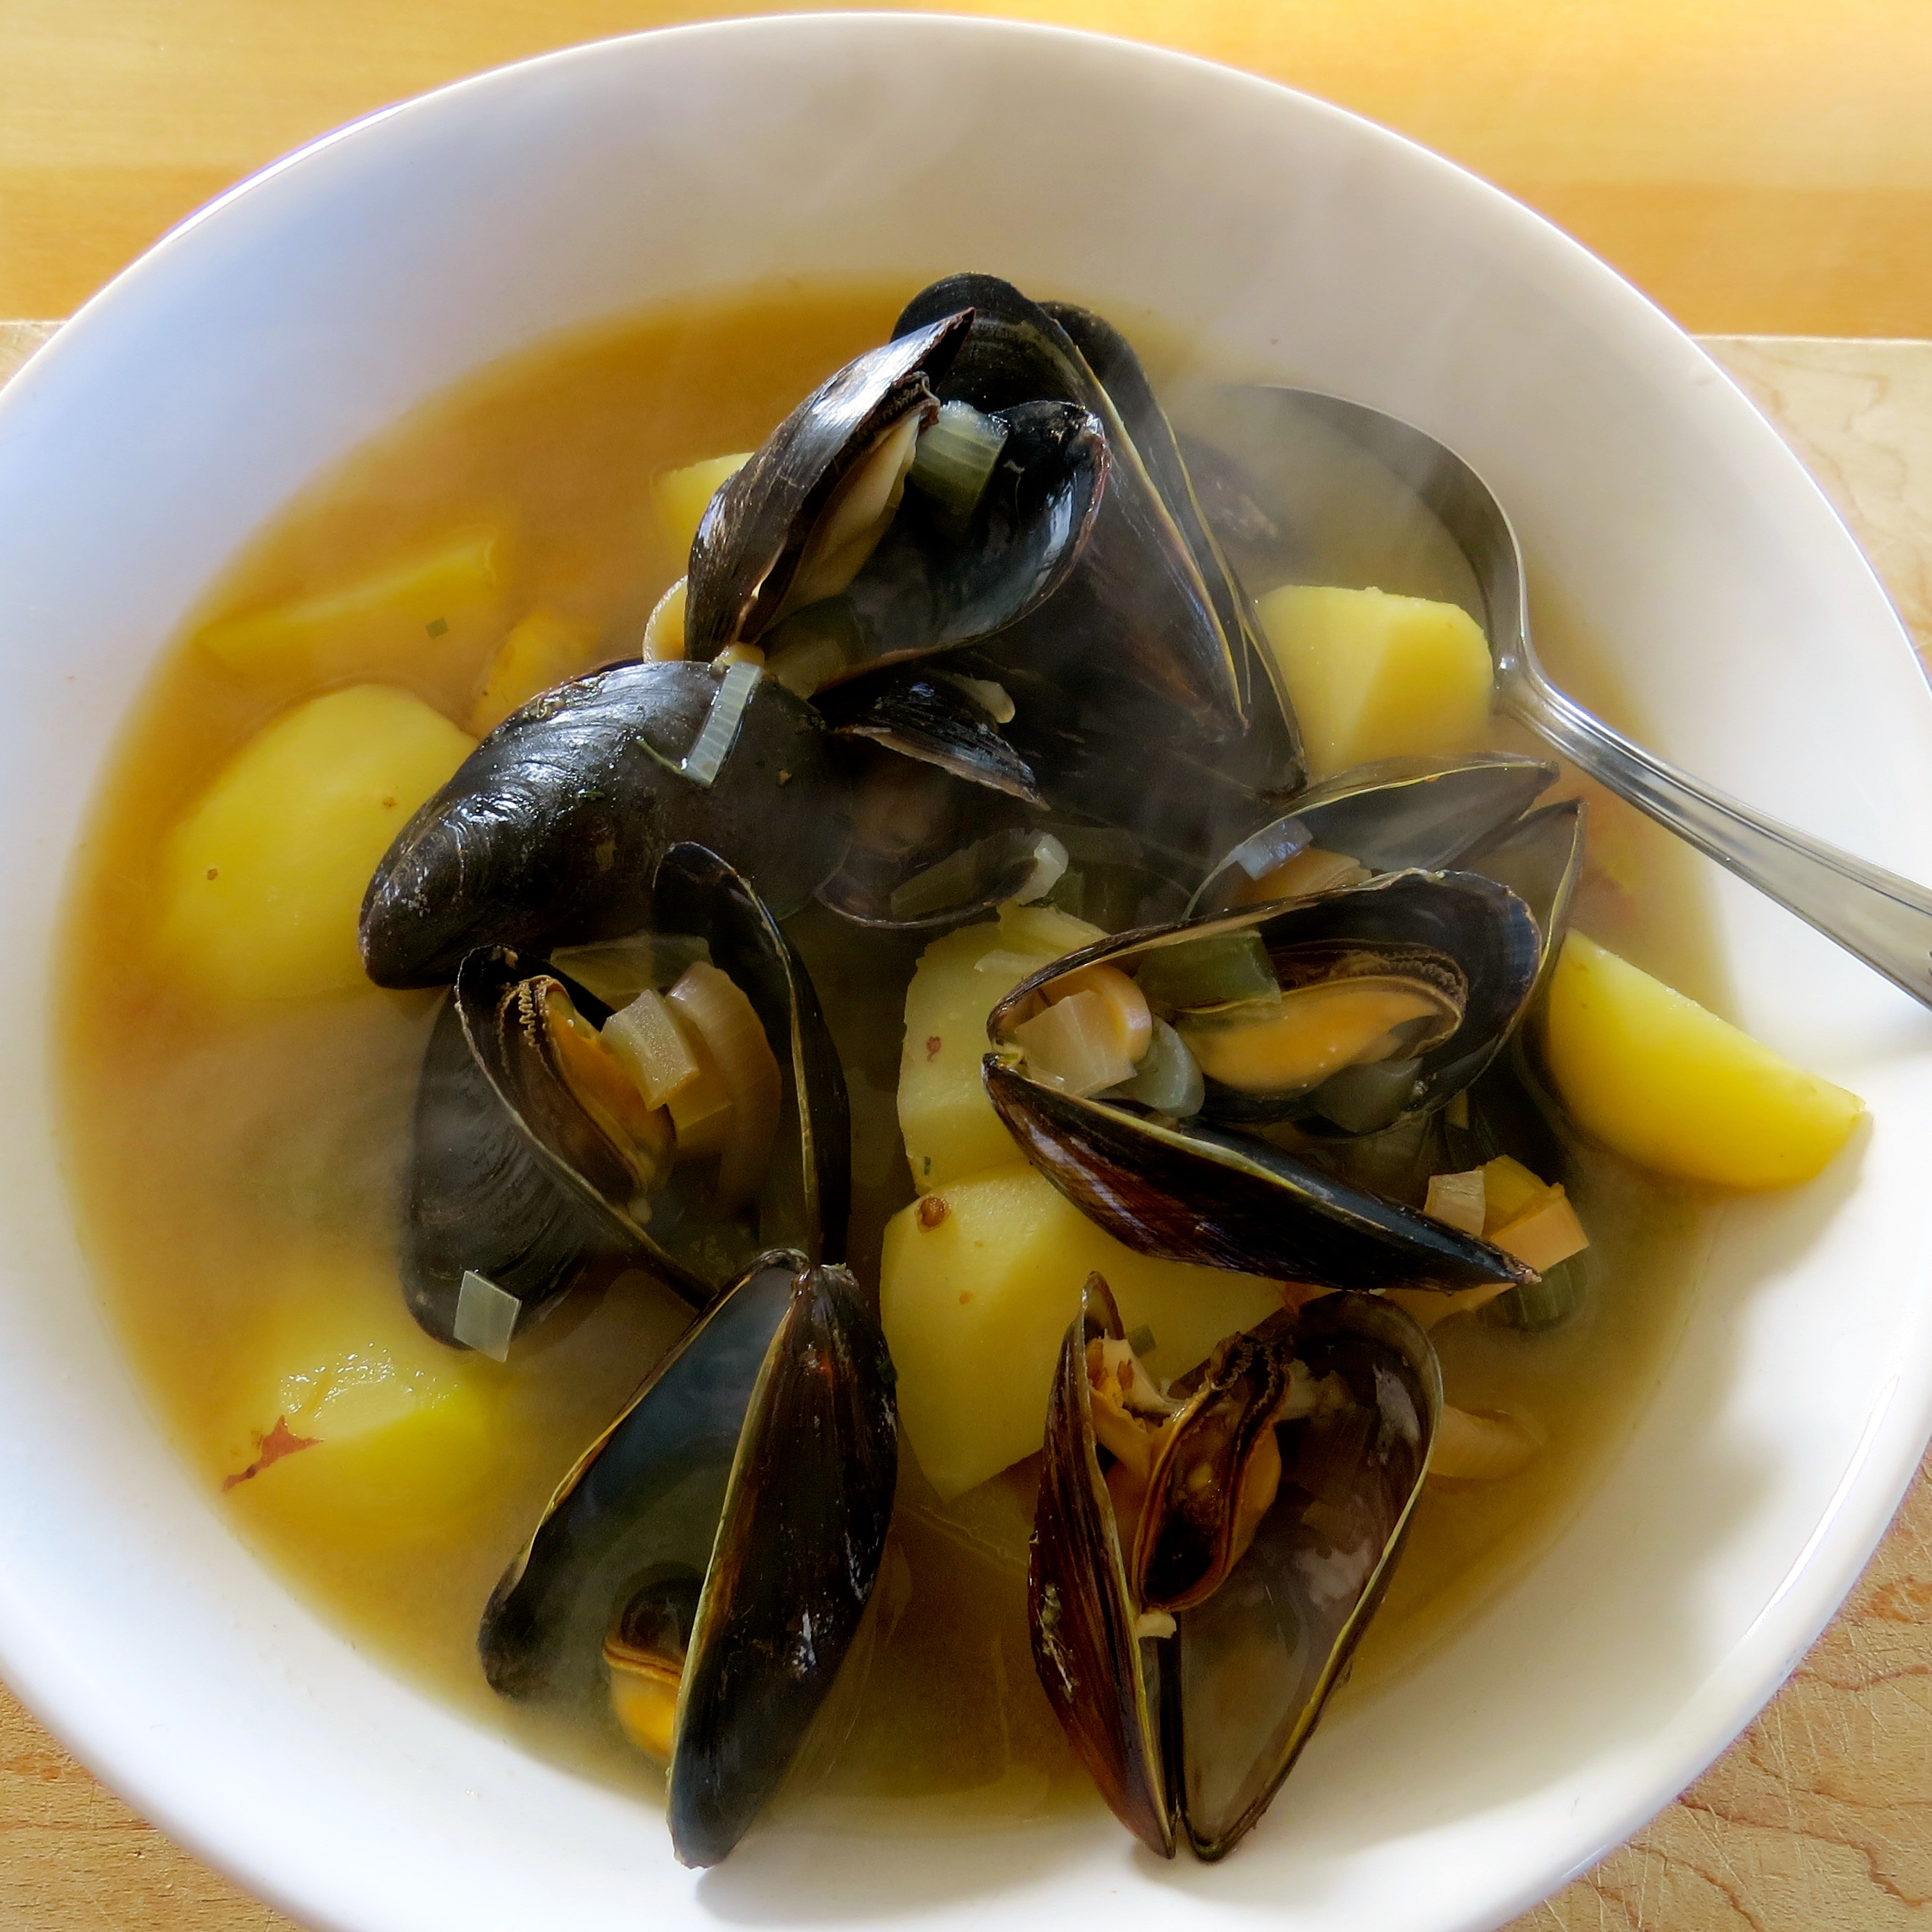 Cotriade, a Breton fish stew, is my French Fridays with Dorie choice this week.